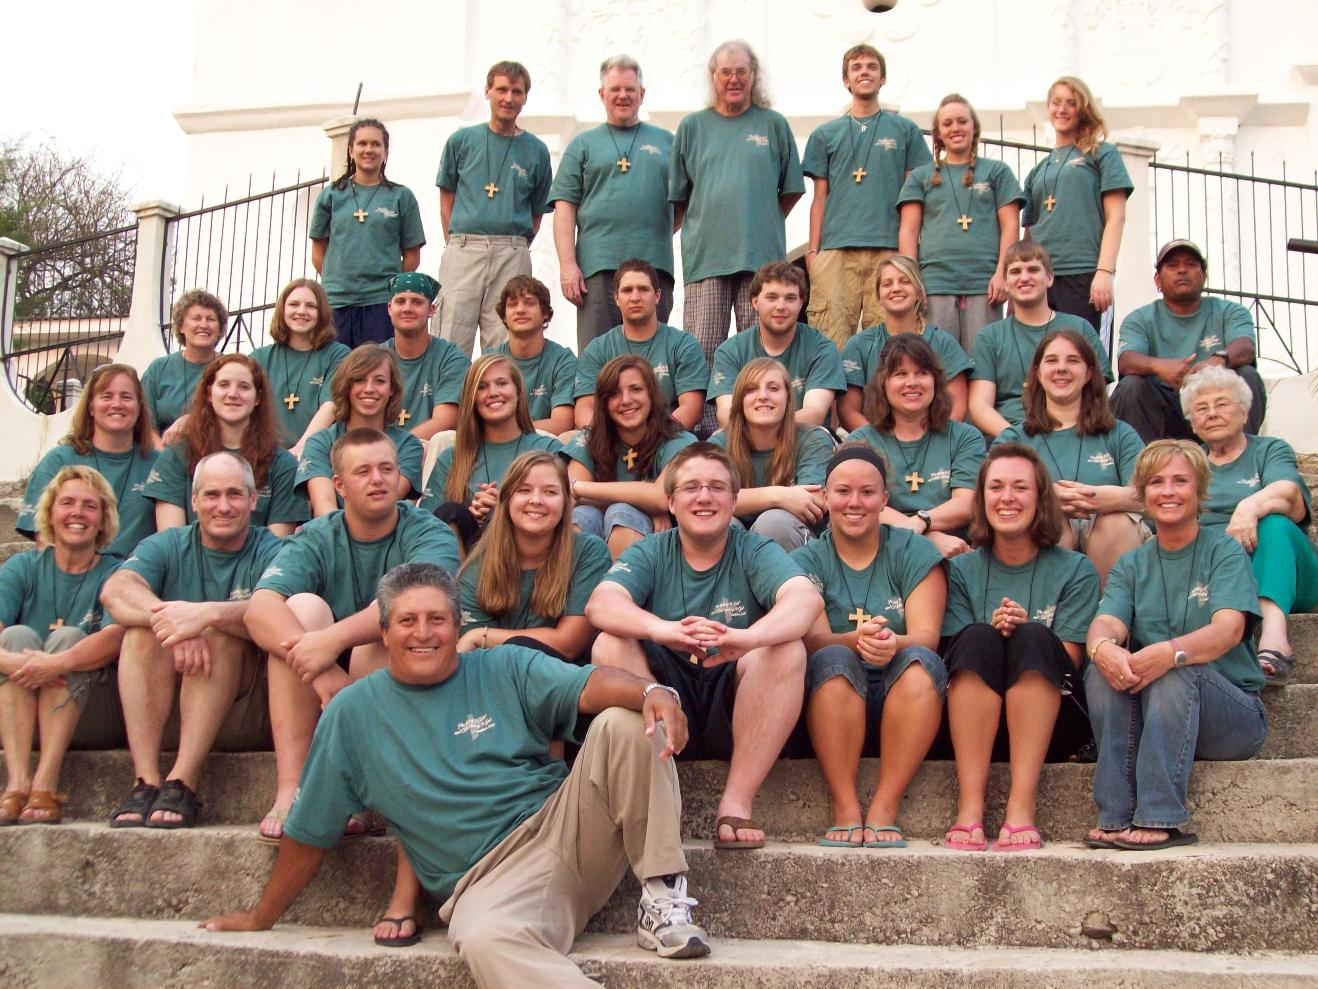 Mission Team poses for a group photo near the end of their mission trip